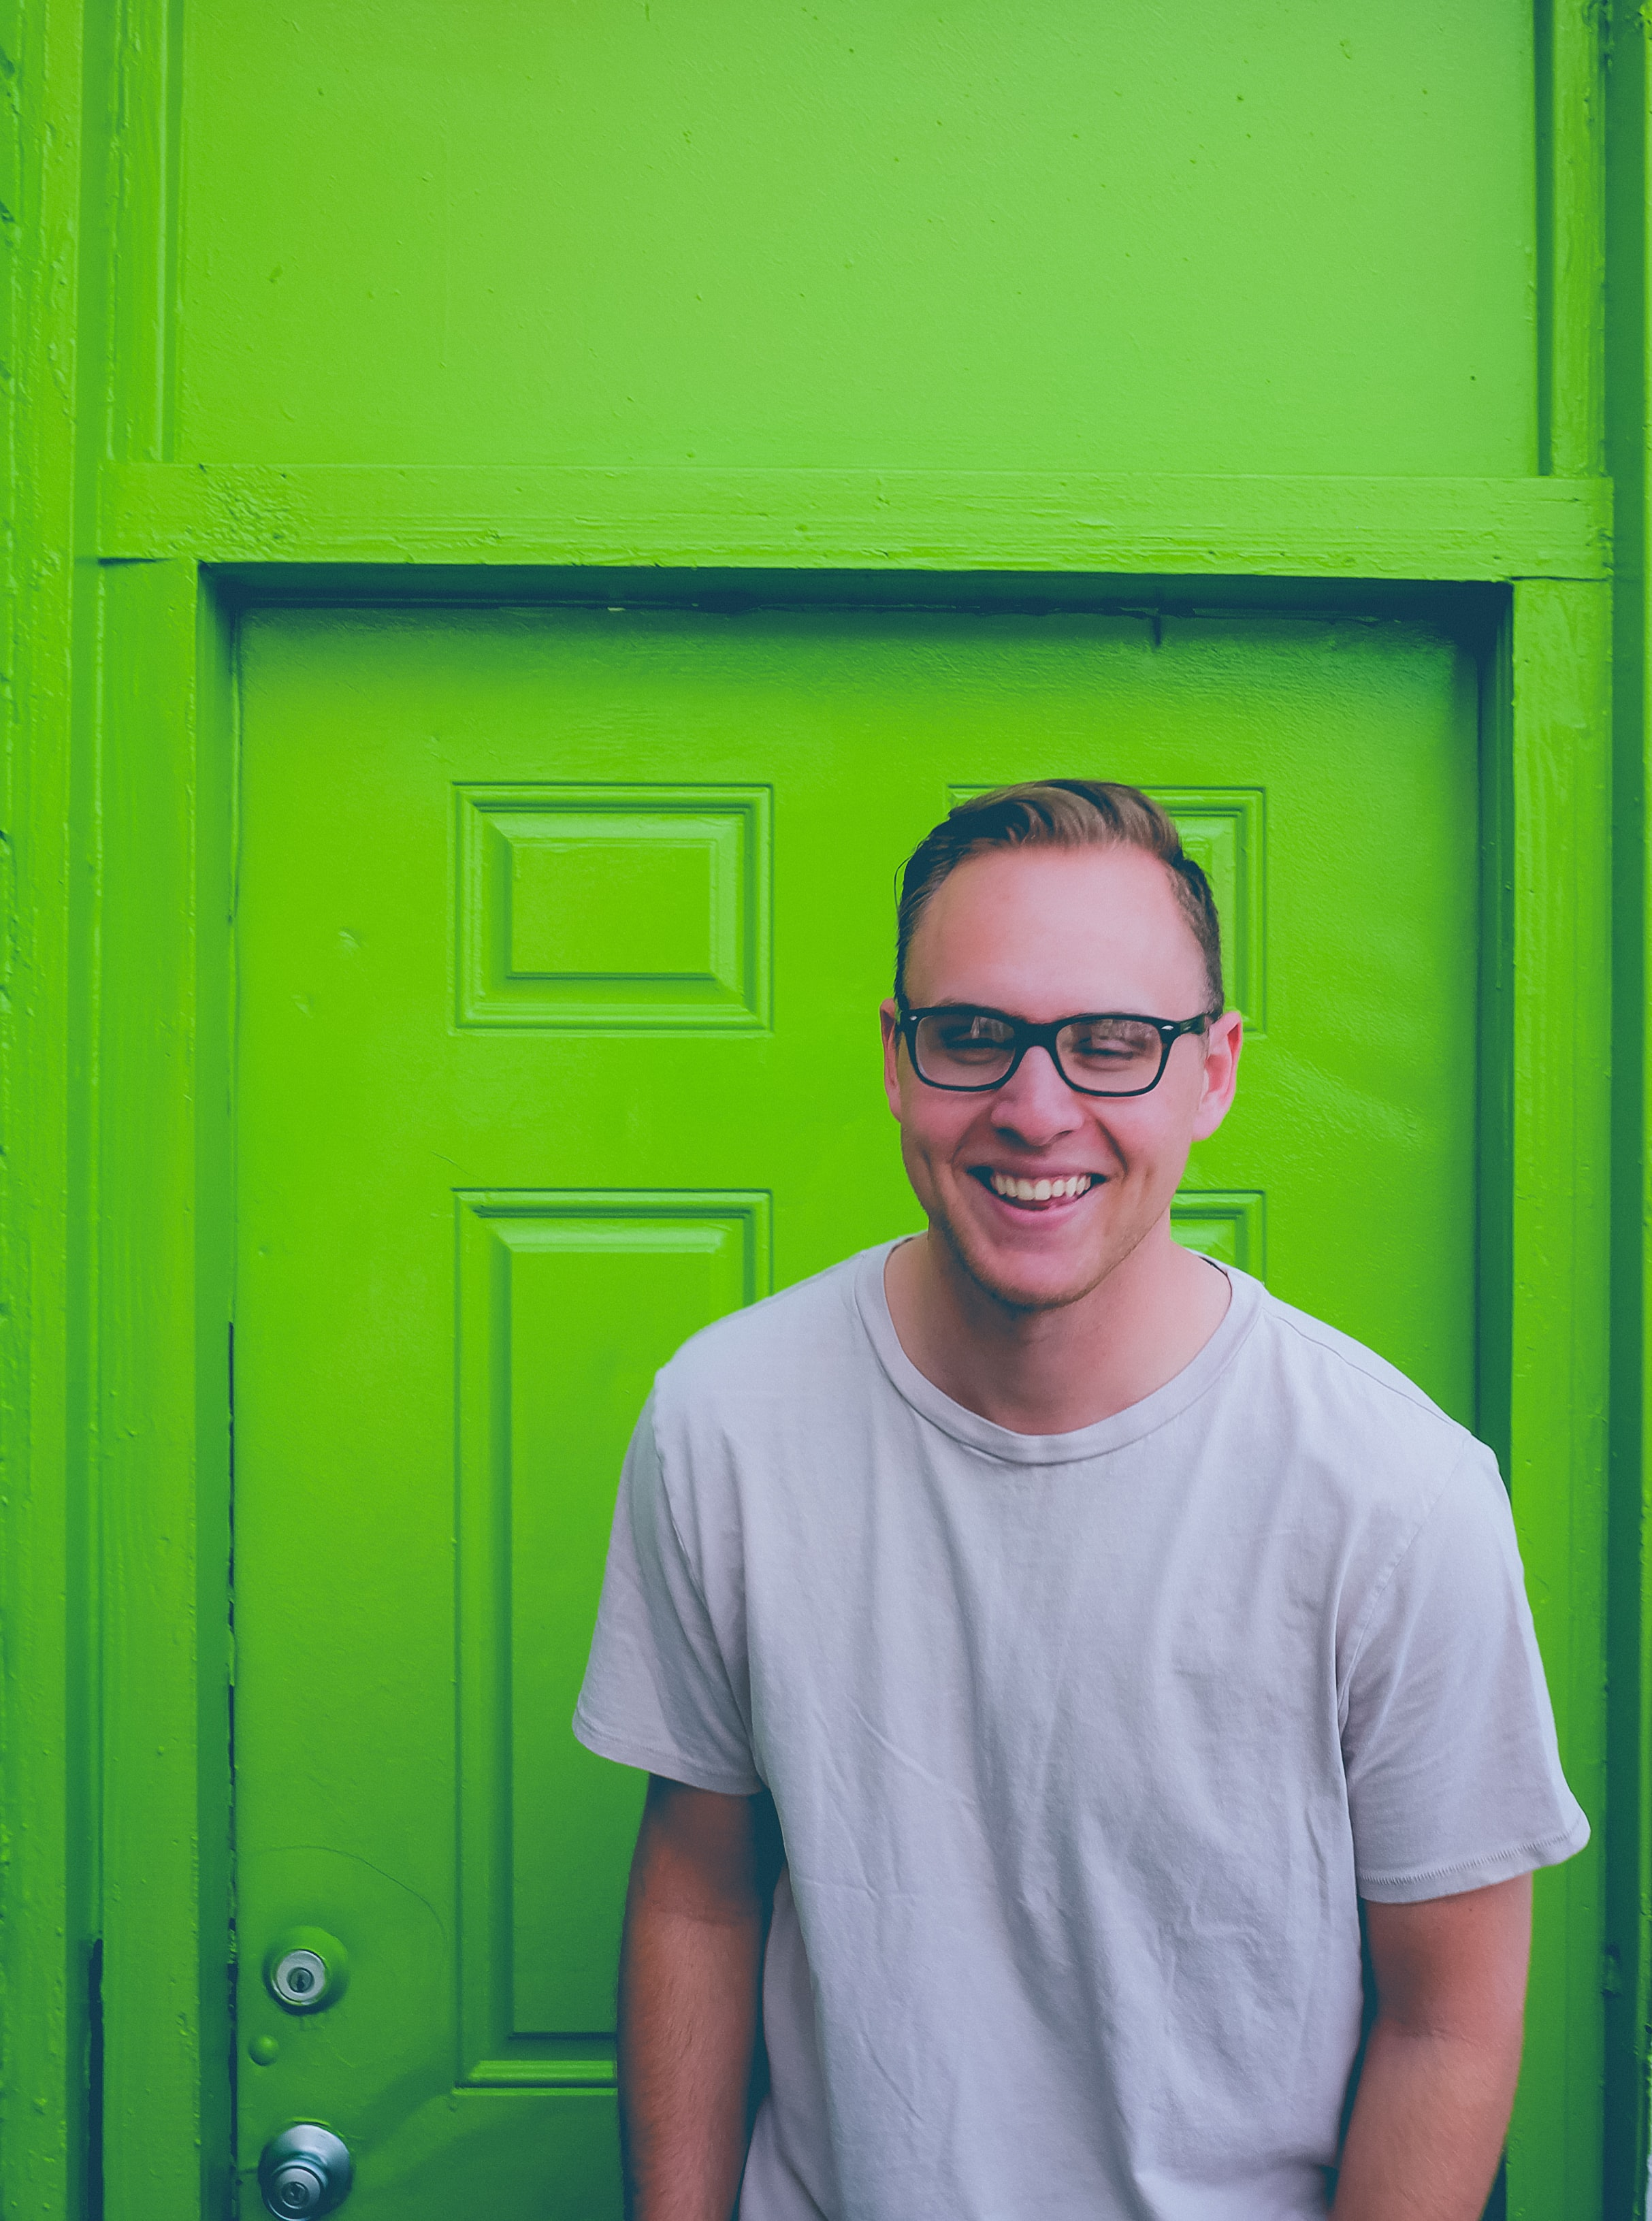 A man wearing glasses, smiling while standing in front of a green door.